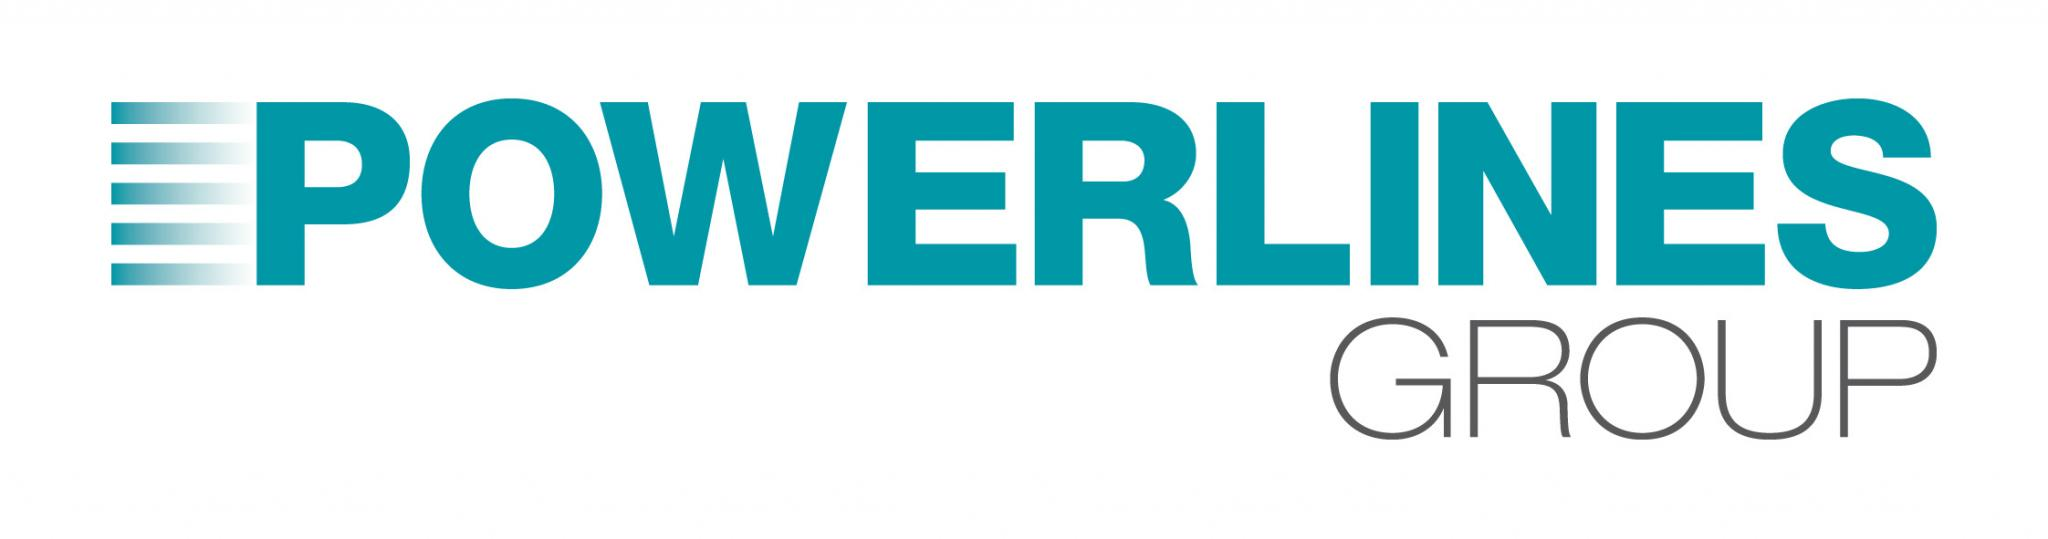 Powerlines Group GmbH - Logo